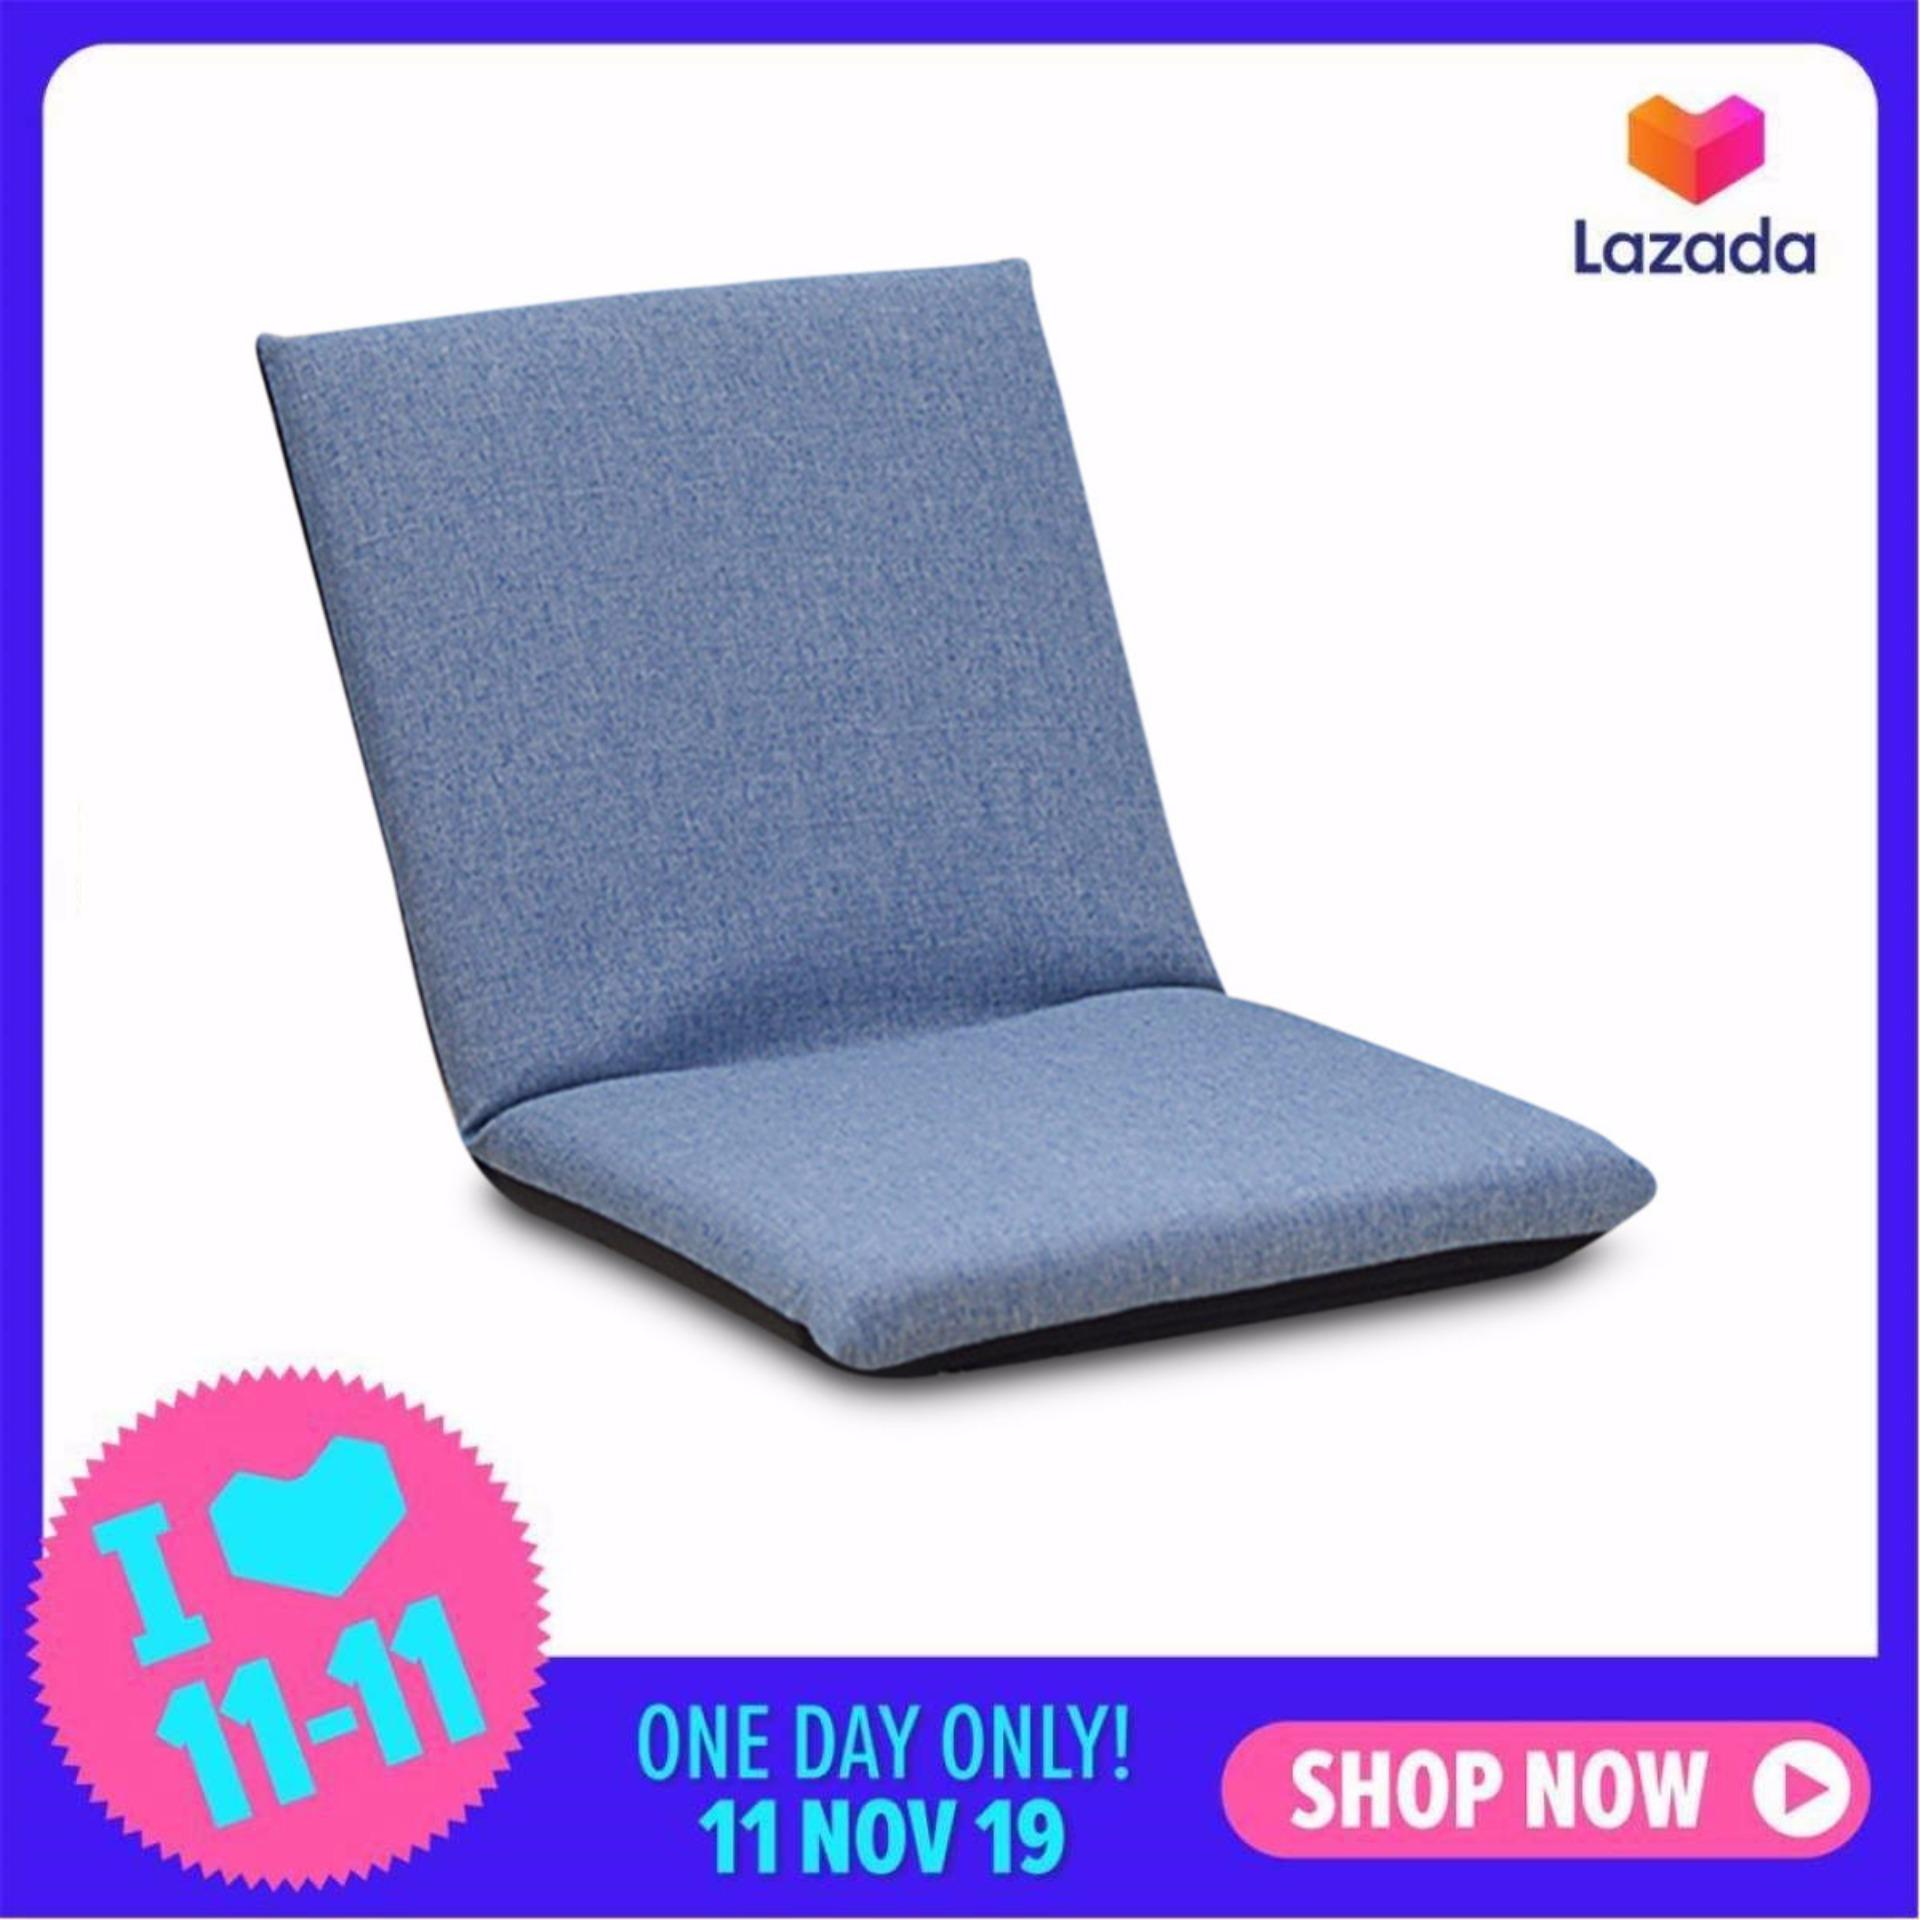 Foldable Floor Chair Adjustable Relaxing Lazy Sofa Seat Cushion Lounger - intl